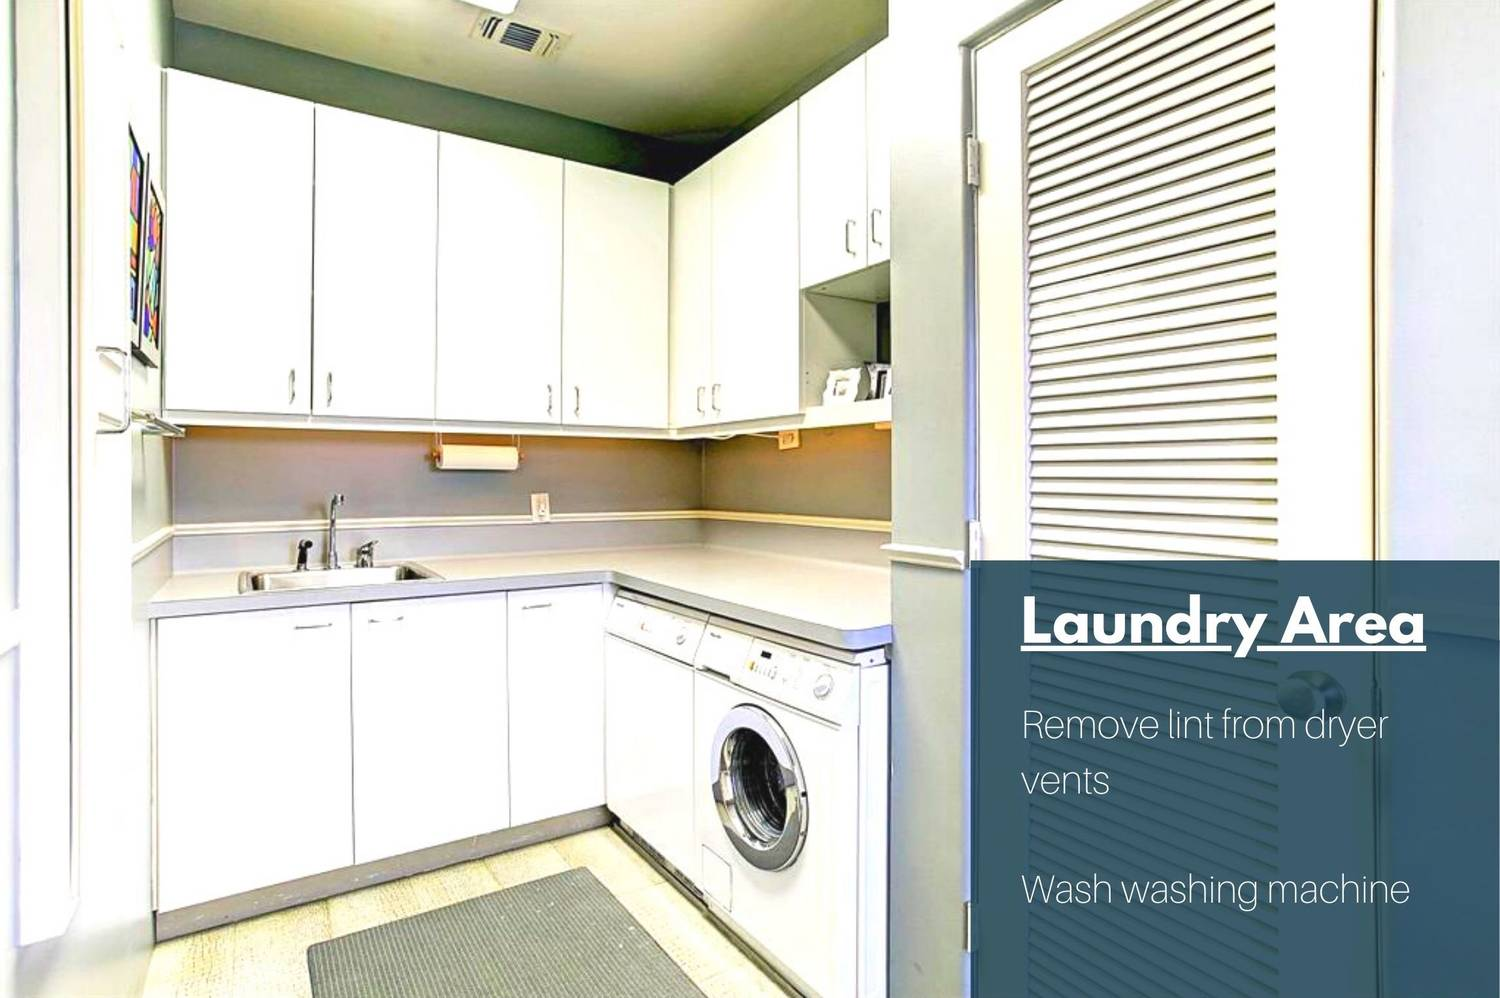 Laundry Room Upkeep